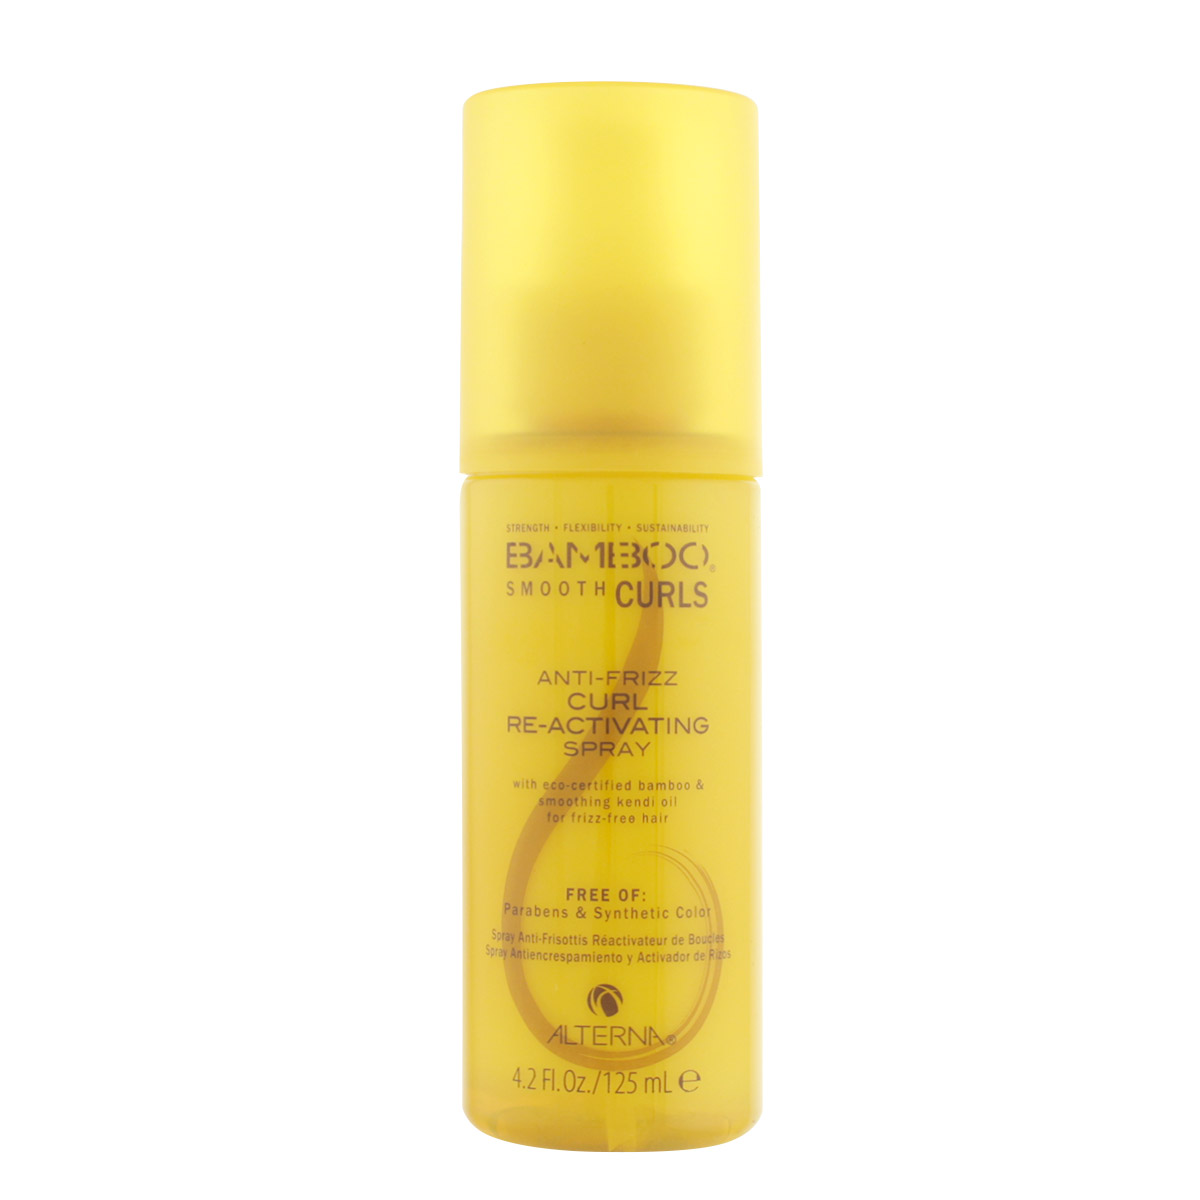 Alterna Bamboo Smooth Anti-Frizz Curl Re-Activating Spray 125 ml